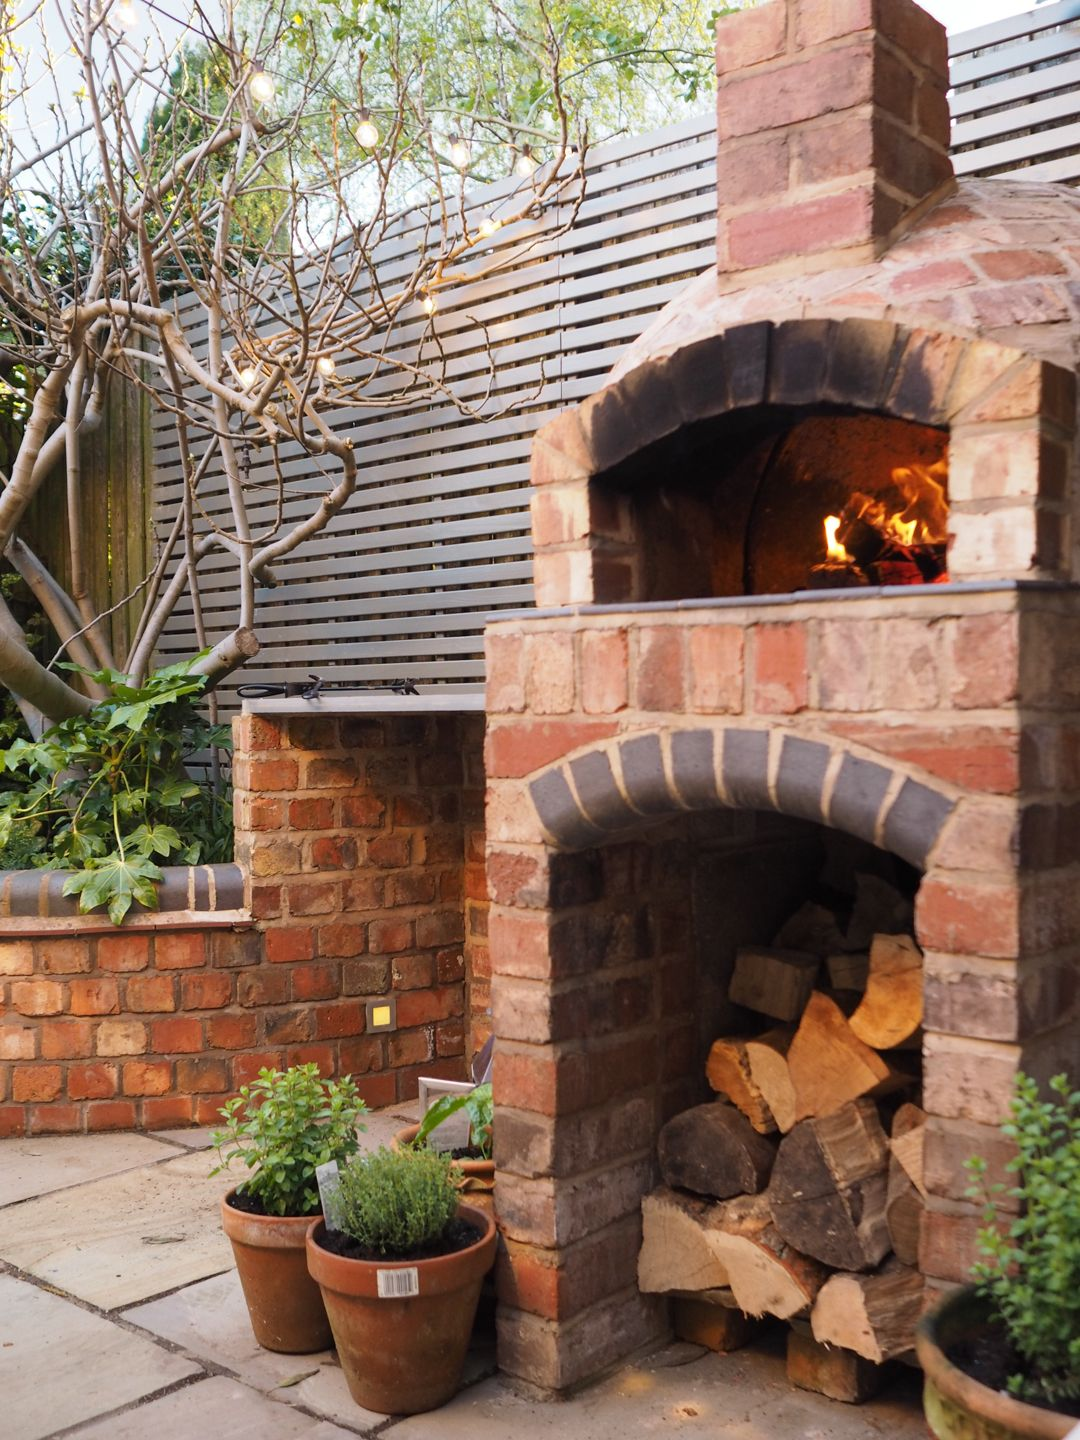 Installing a wood fired pizza oven in our garden with